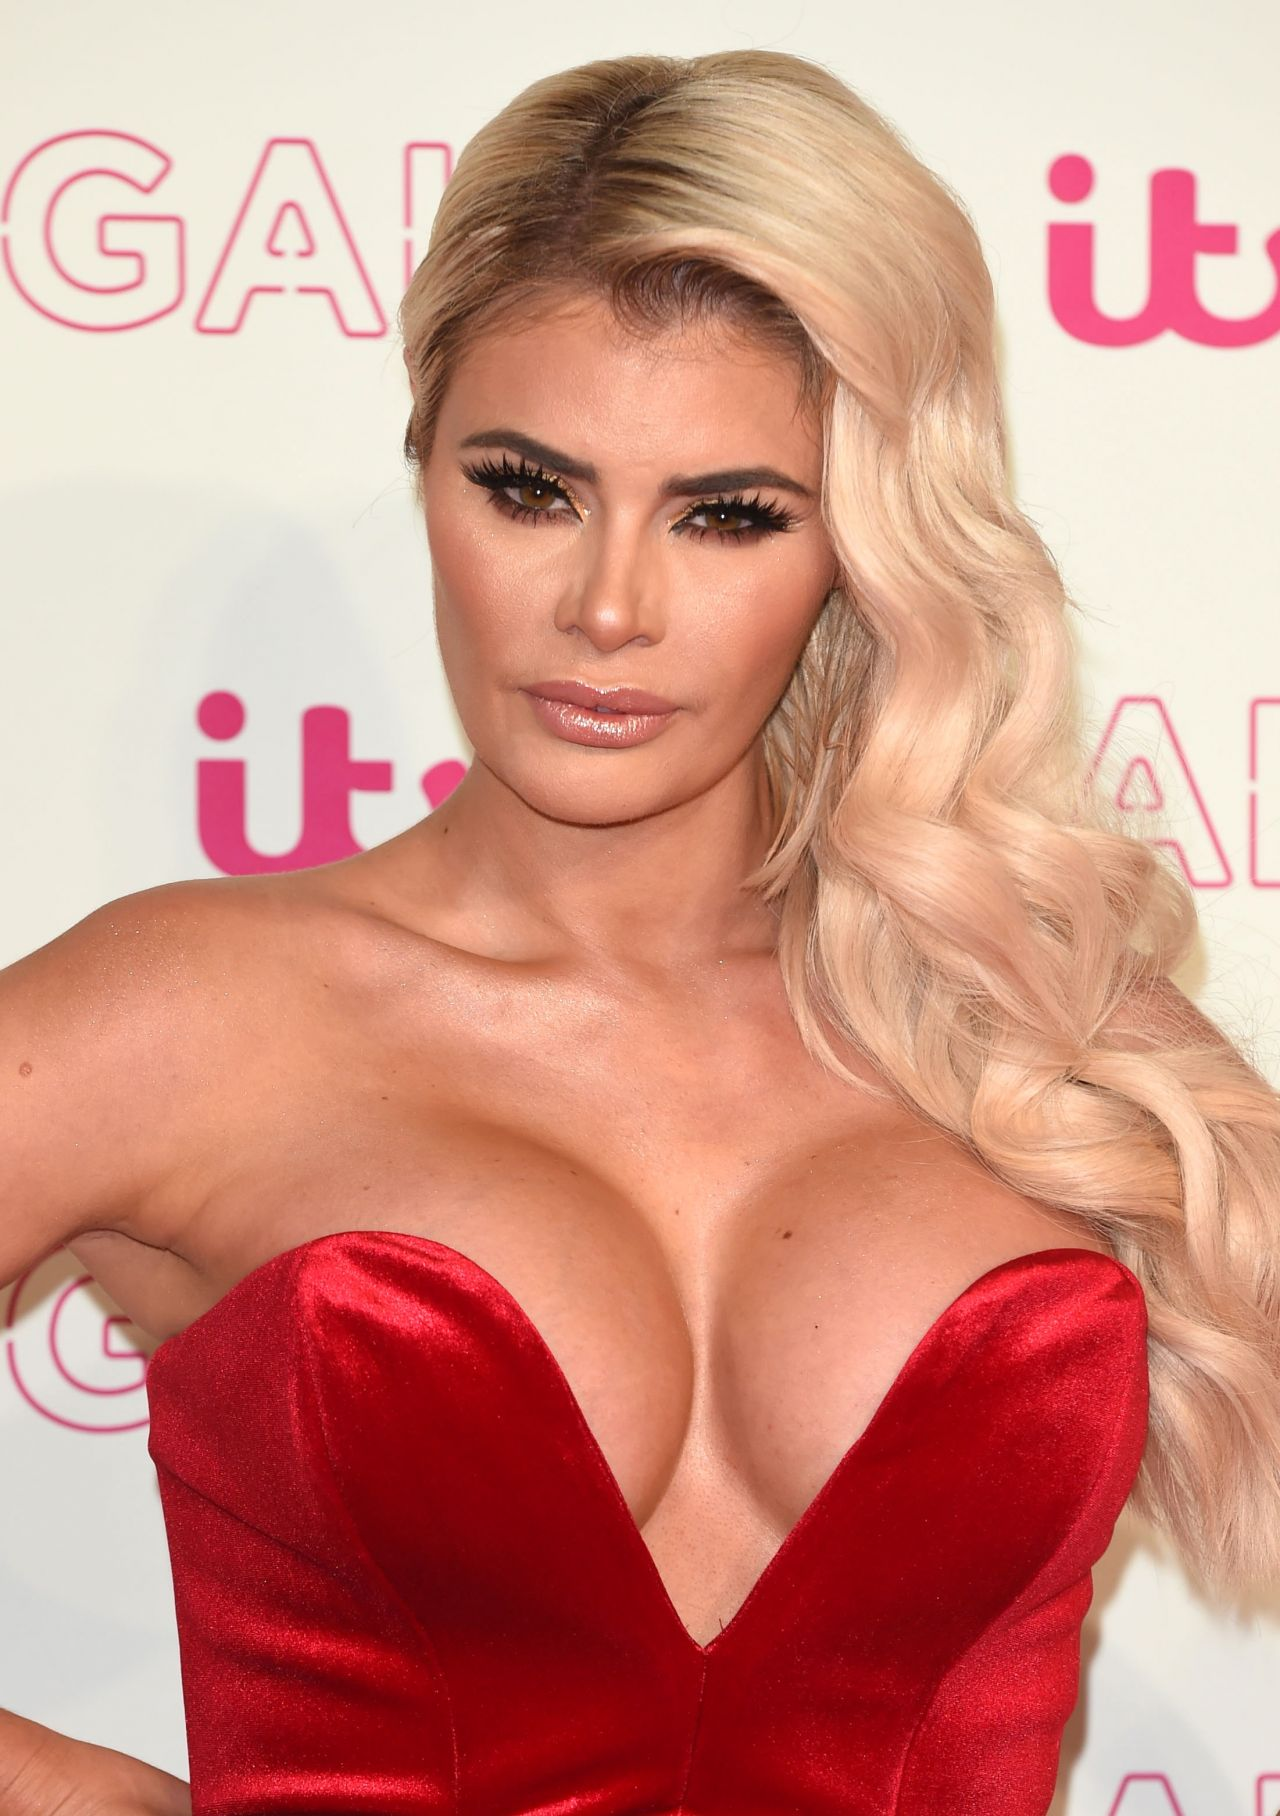 Chloe Sims The Itv Gala In London 11 24 2016